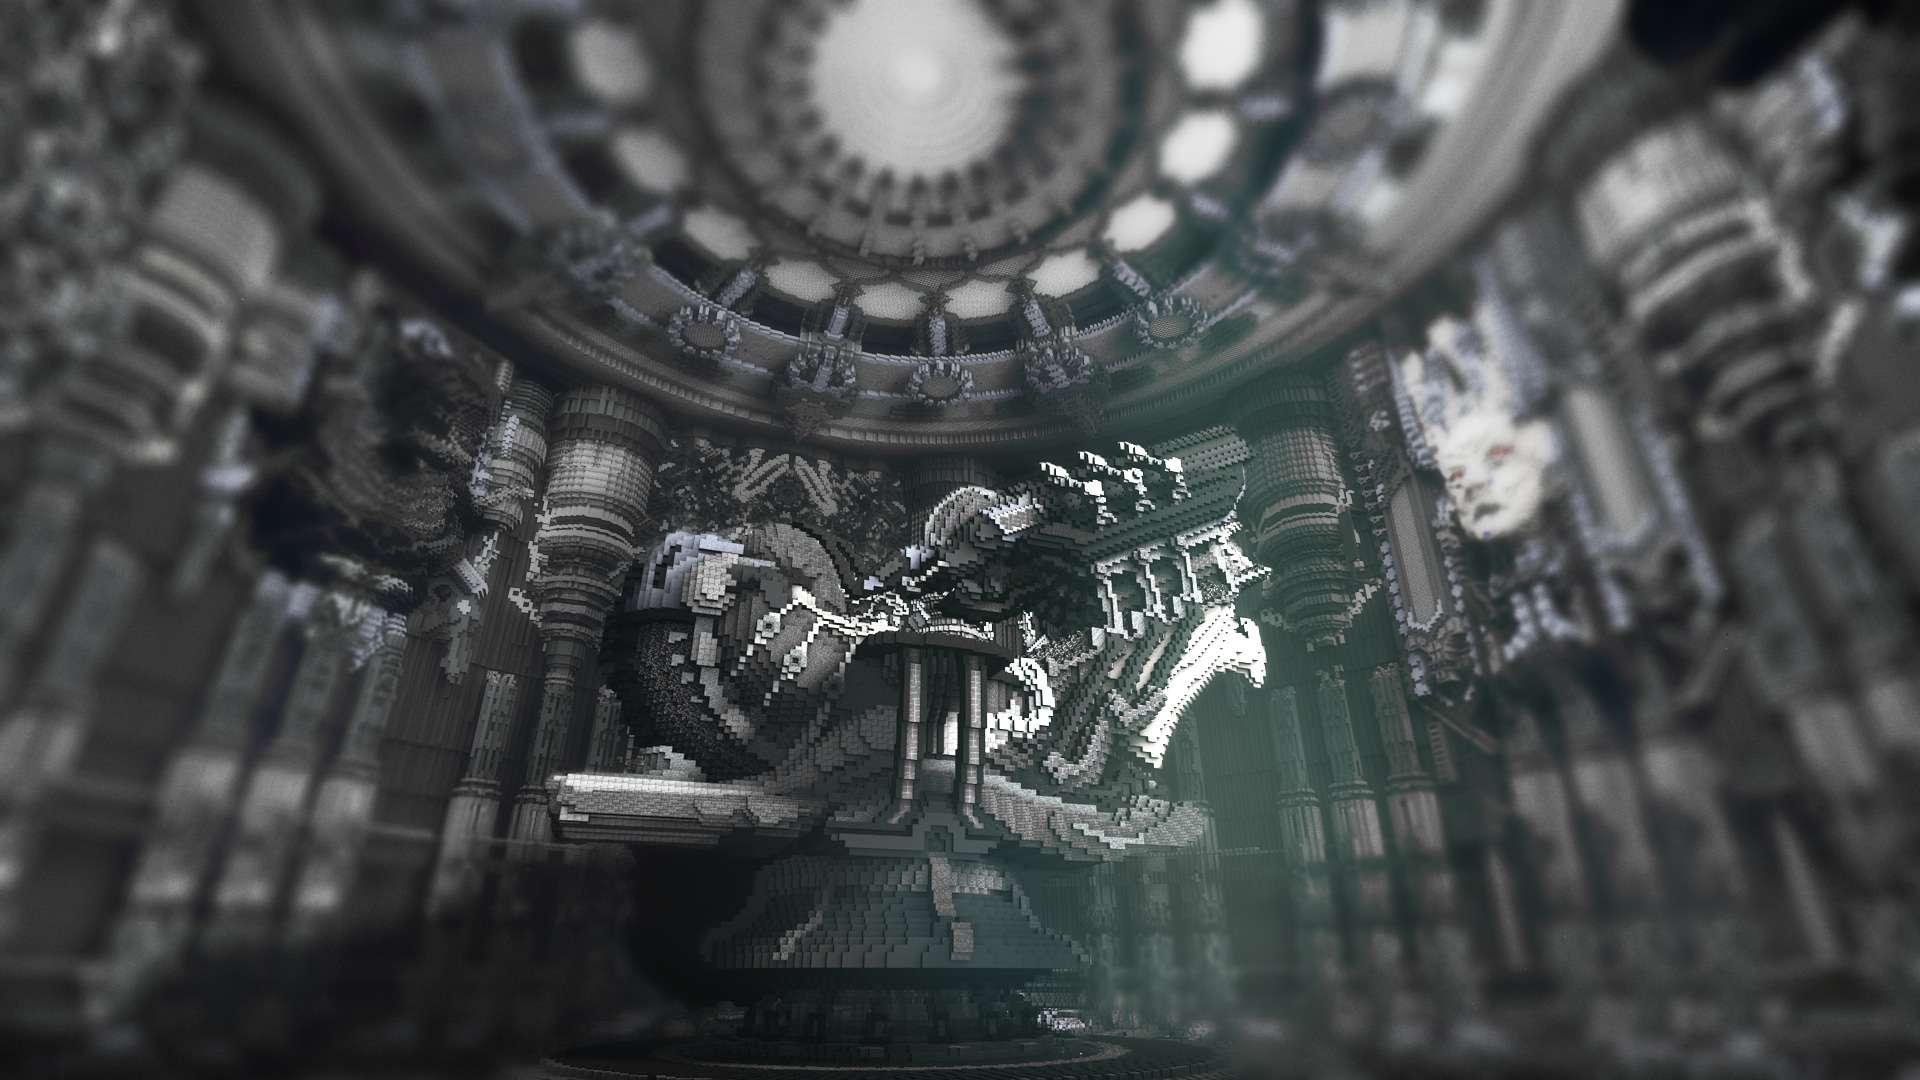 Prometheus A Tribute To HR Giger Minecraft Building Inc